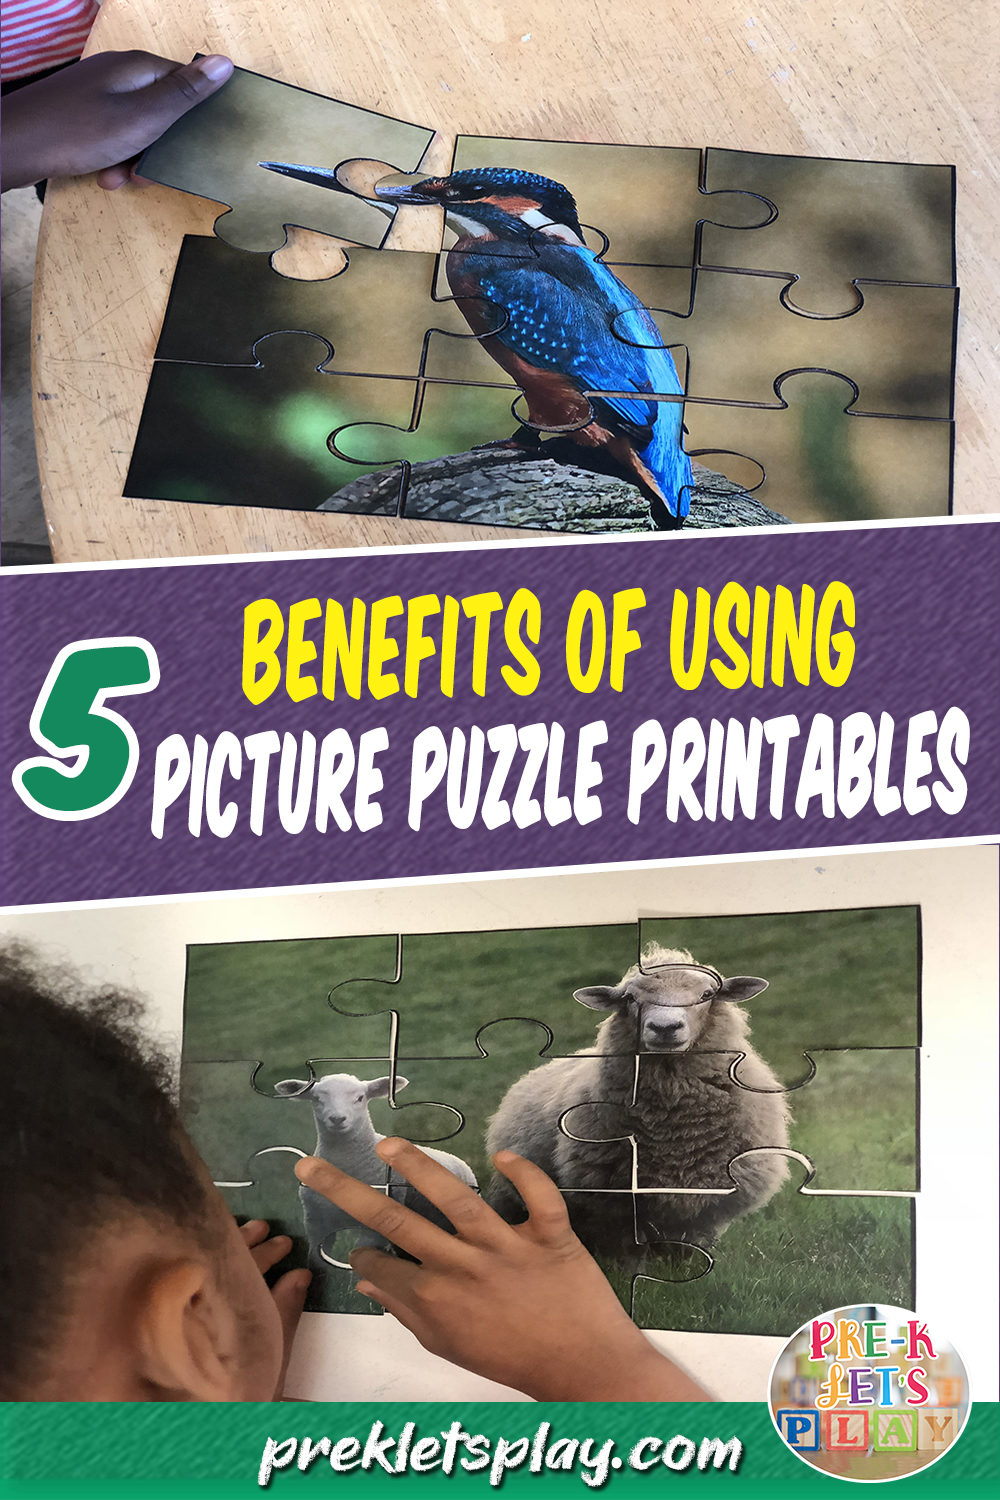 Picture Puzzles and its 5 benefits